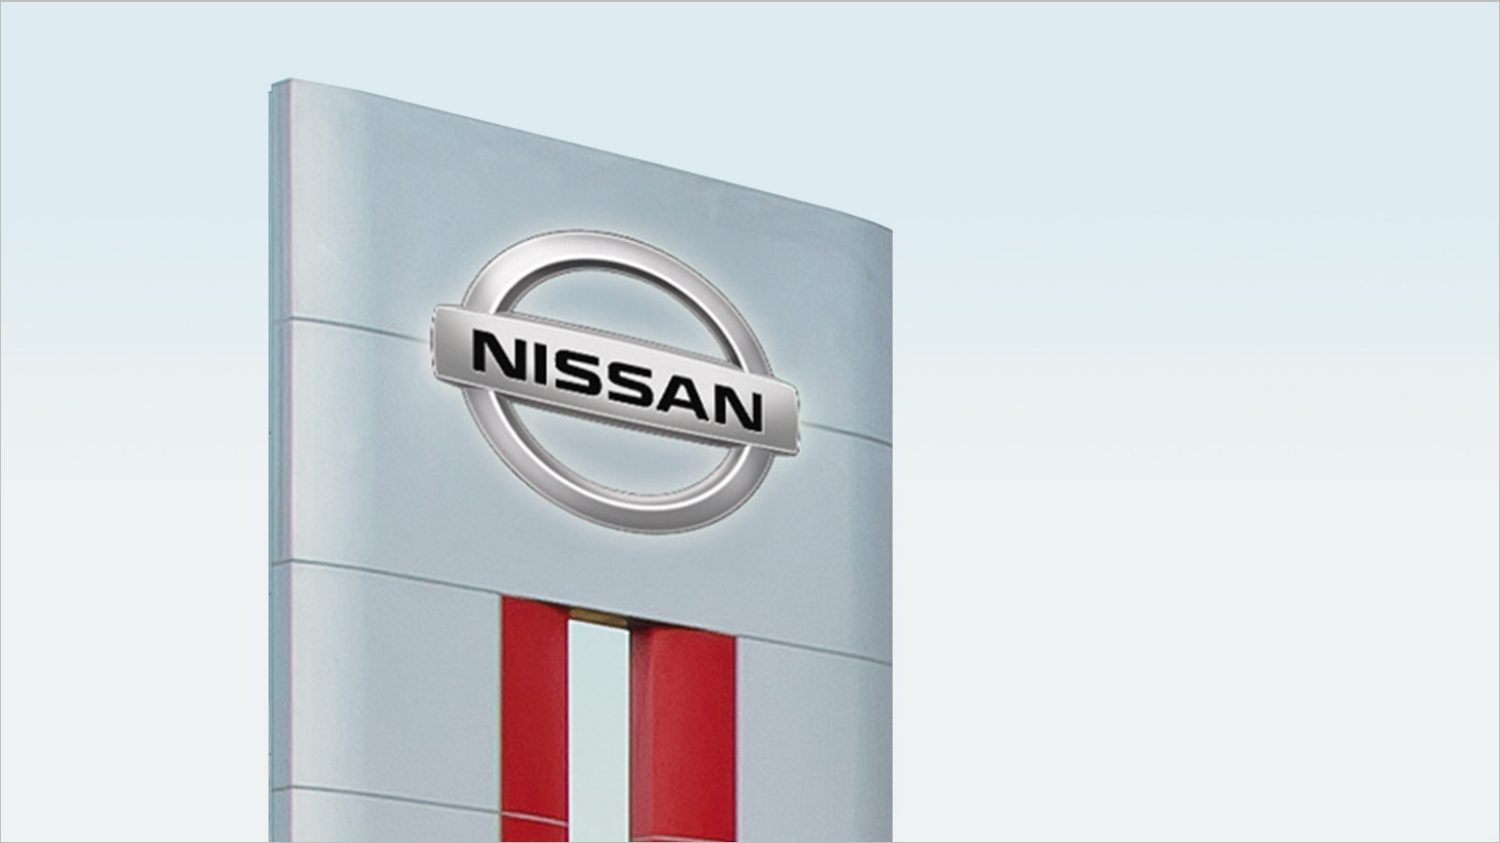 Nissan Arabian Automobiles Showroom